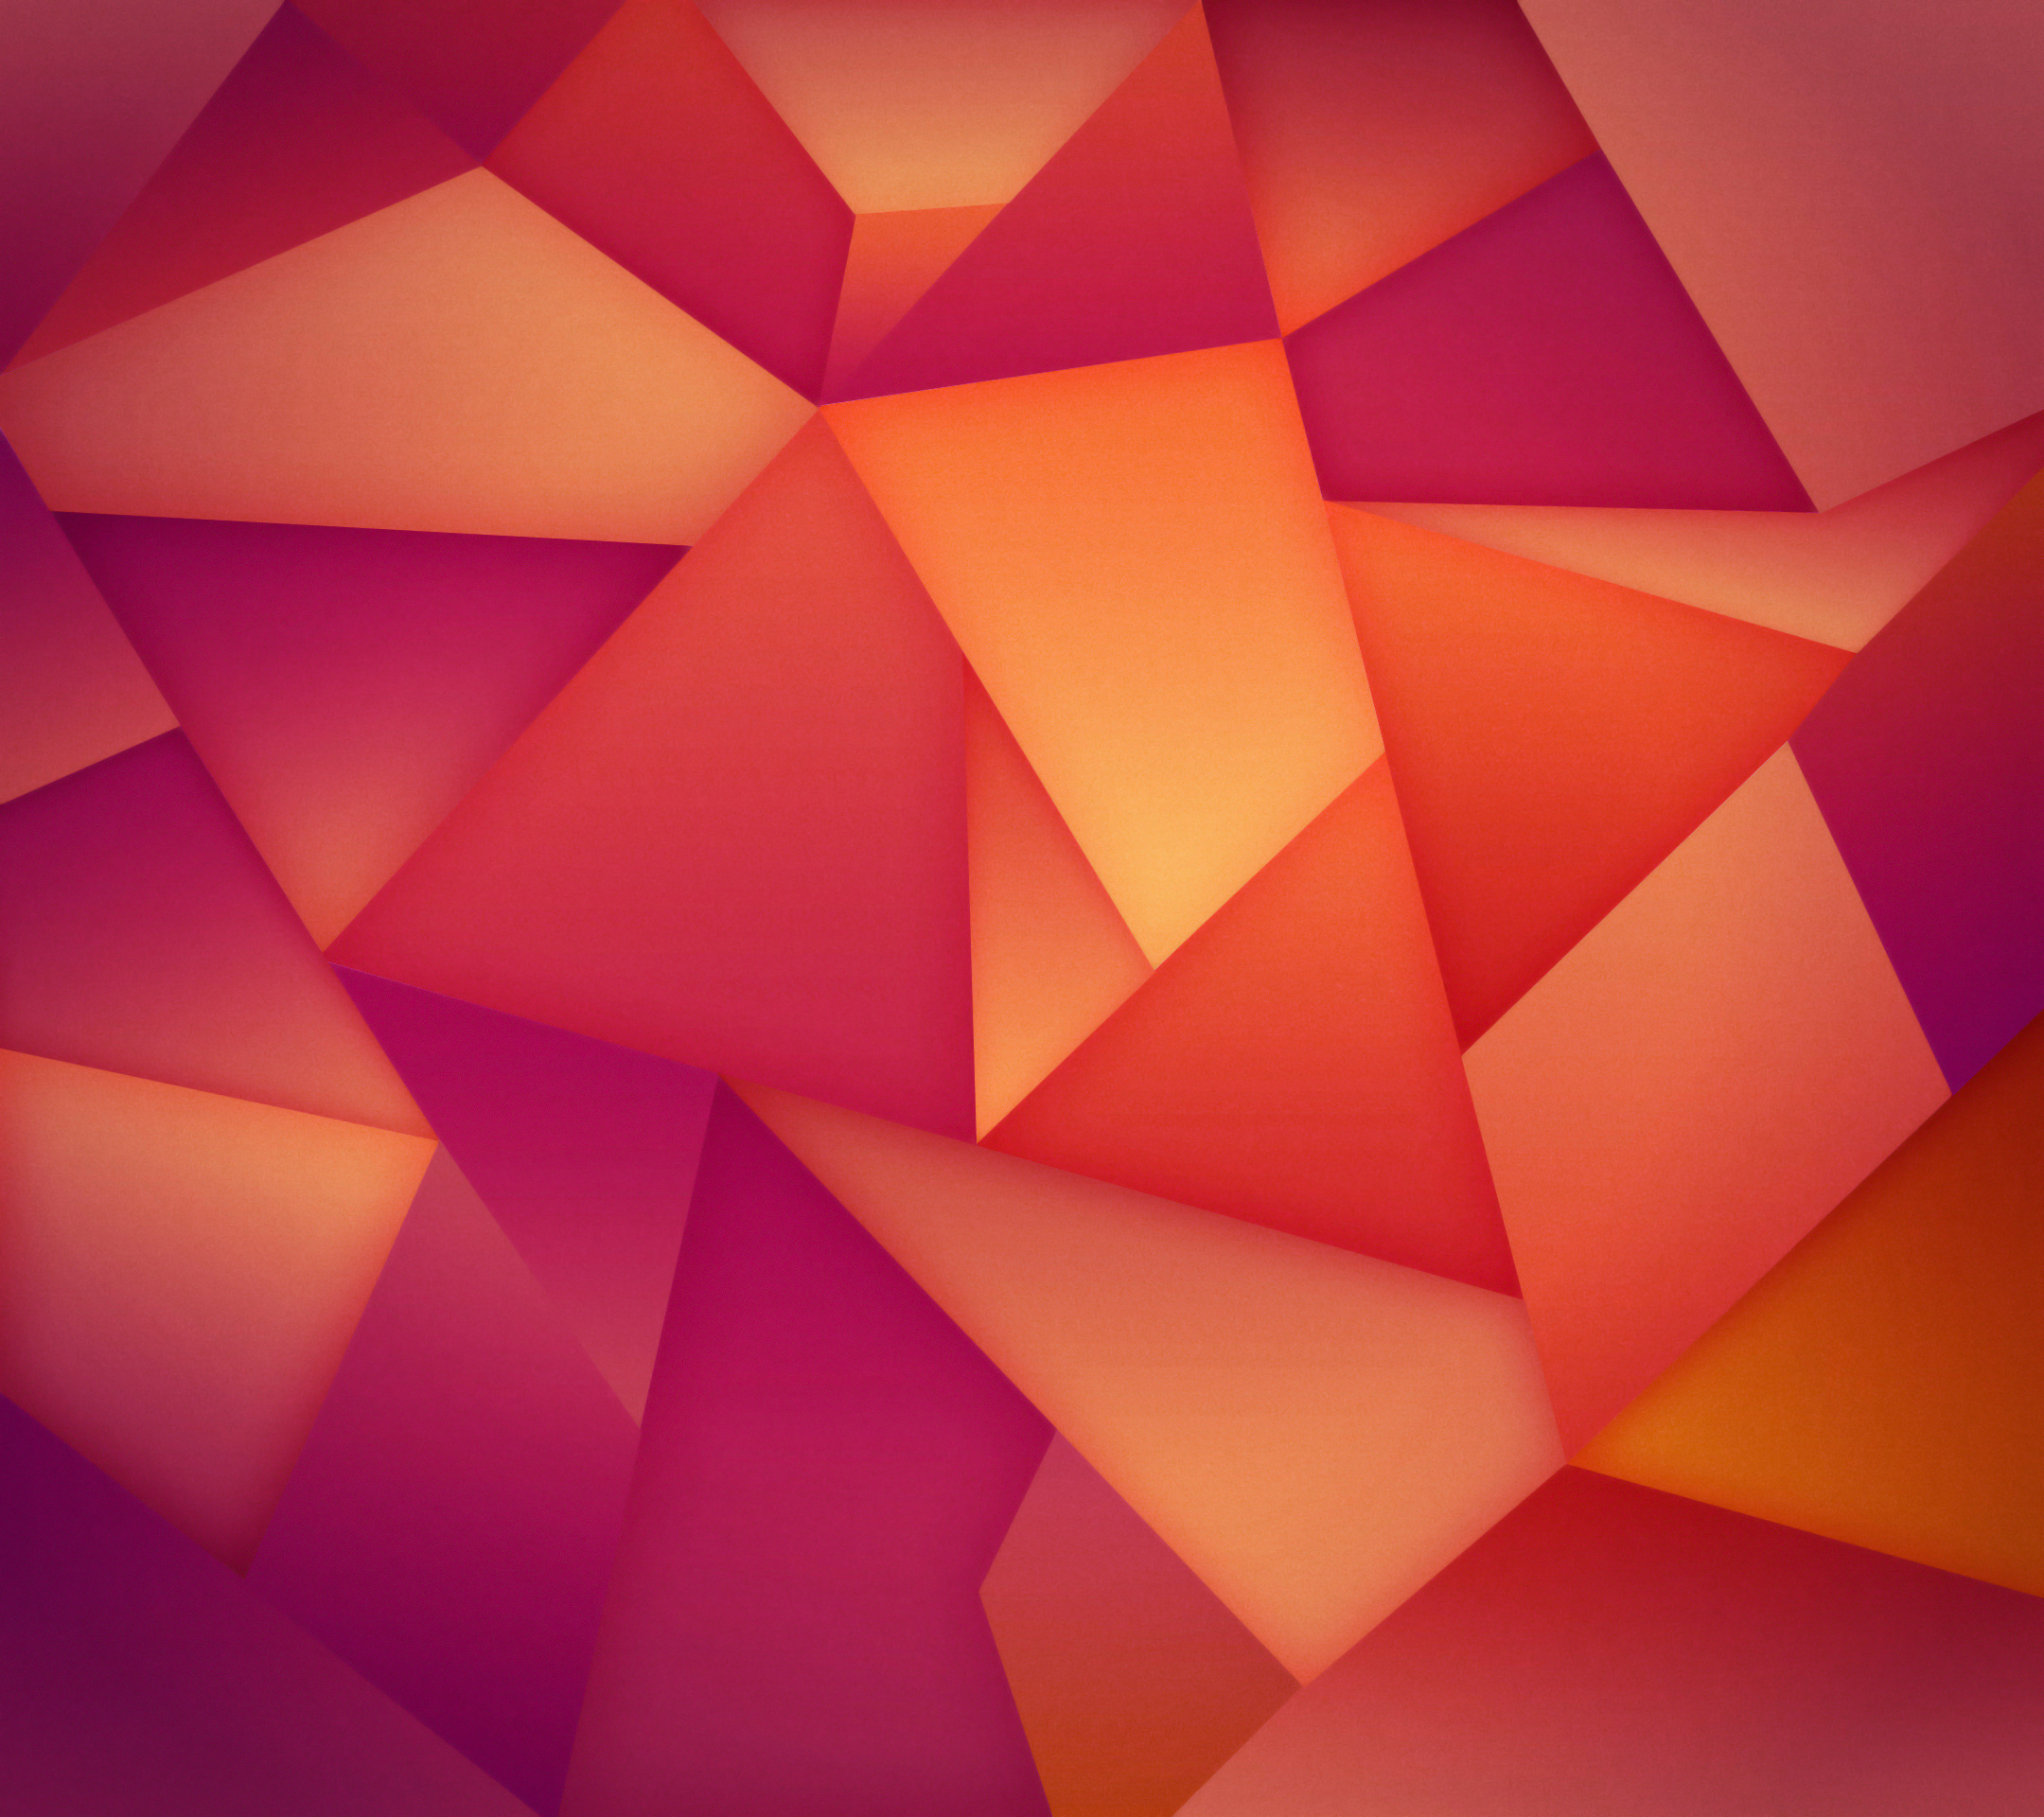 Abstract Triangles Wallpaper 2160x1920 162631 Wallpaperup